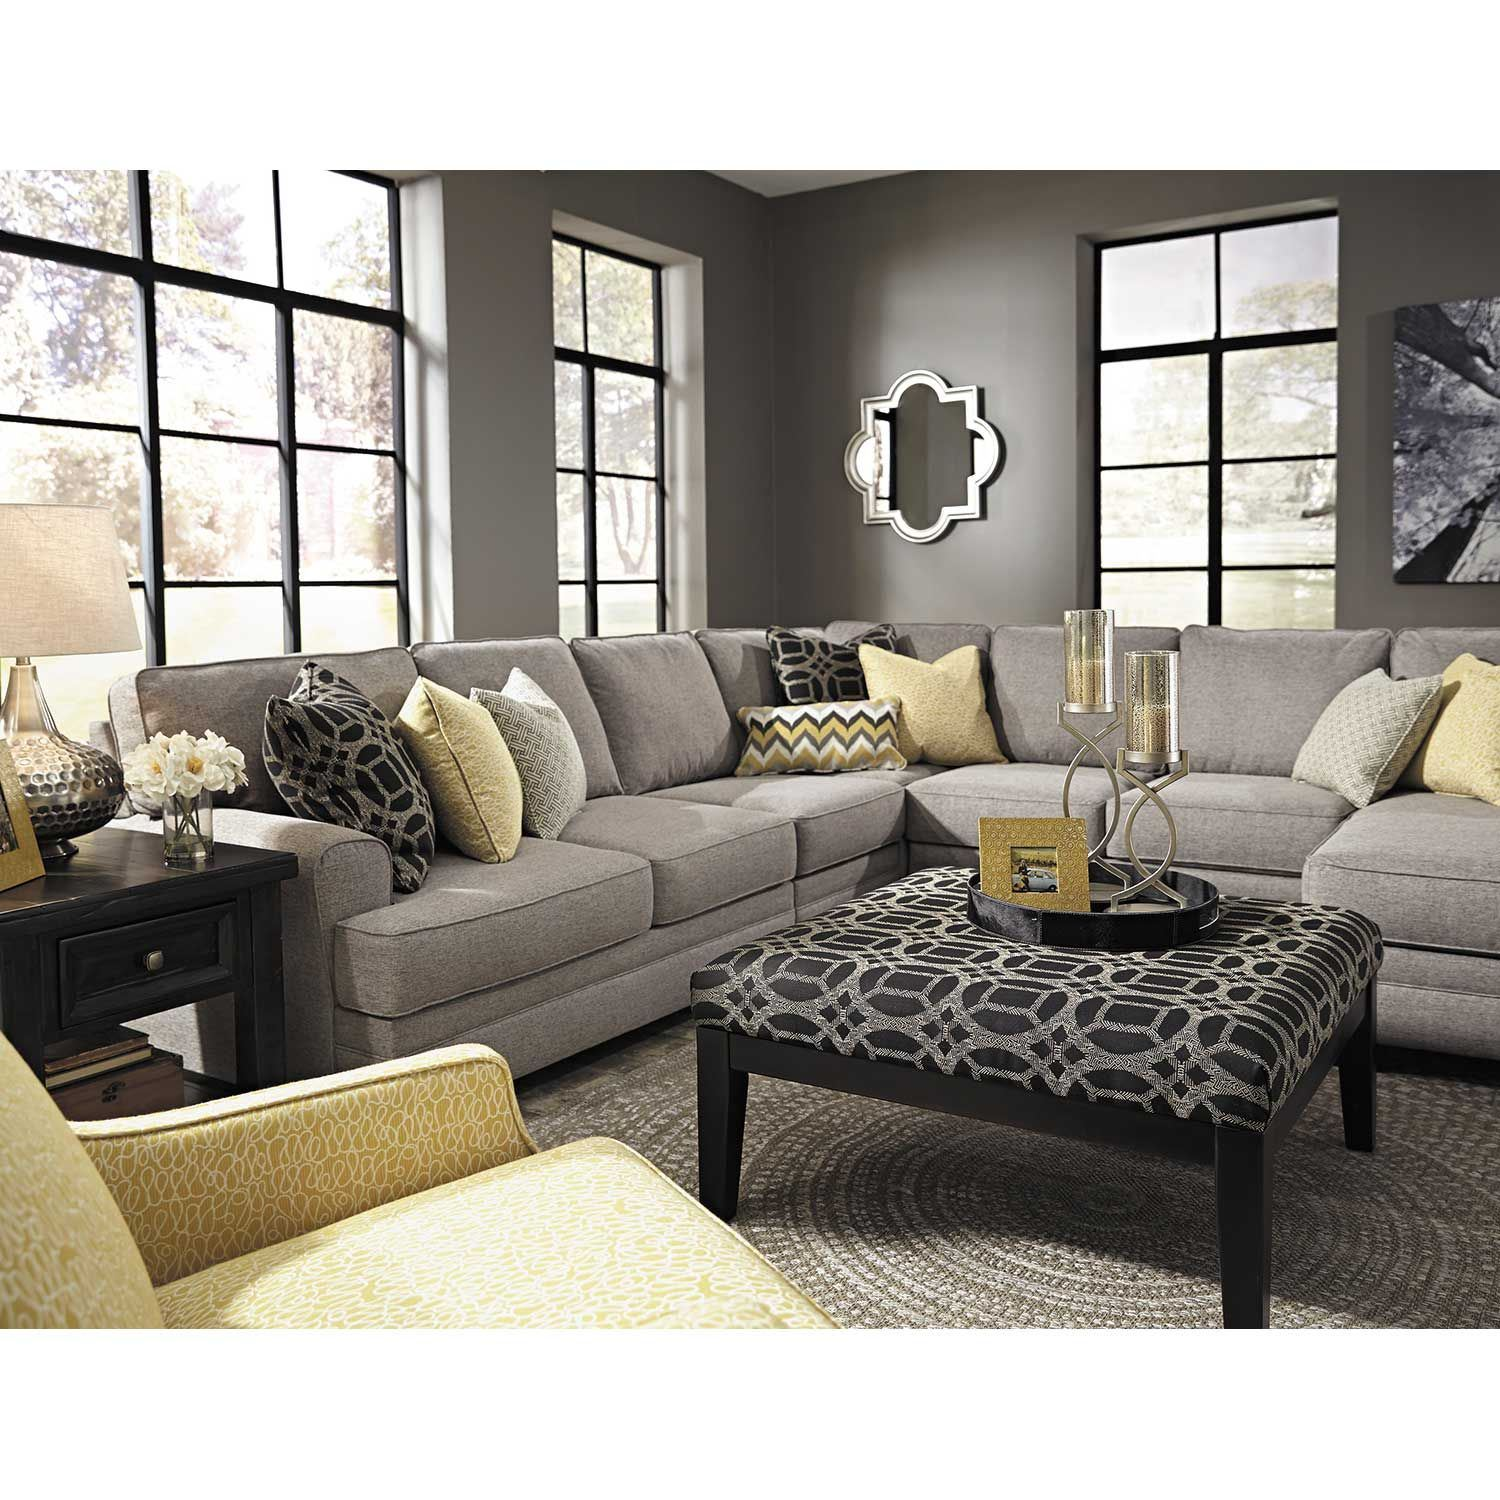 Picture of Cresson Yellow Accent Chair